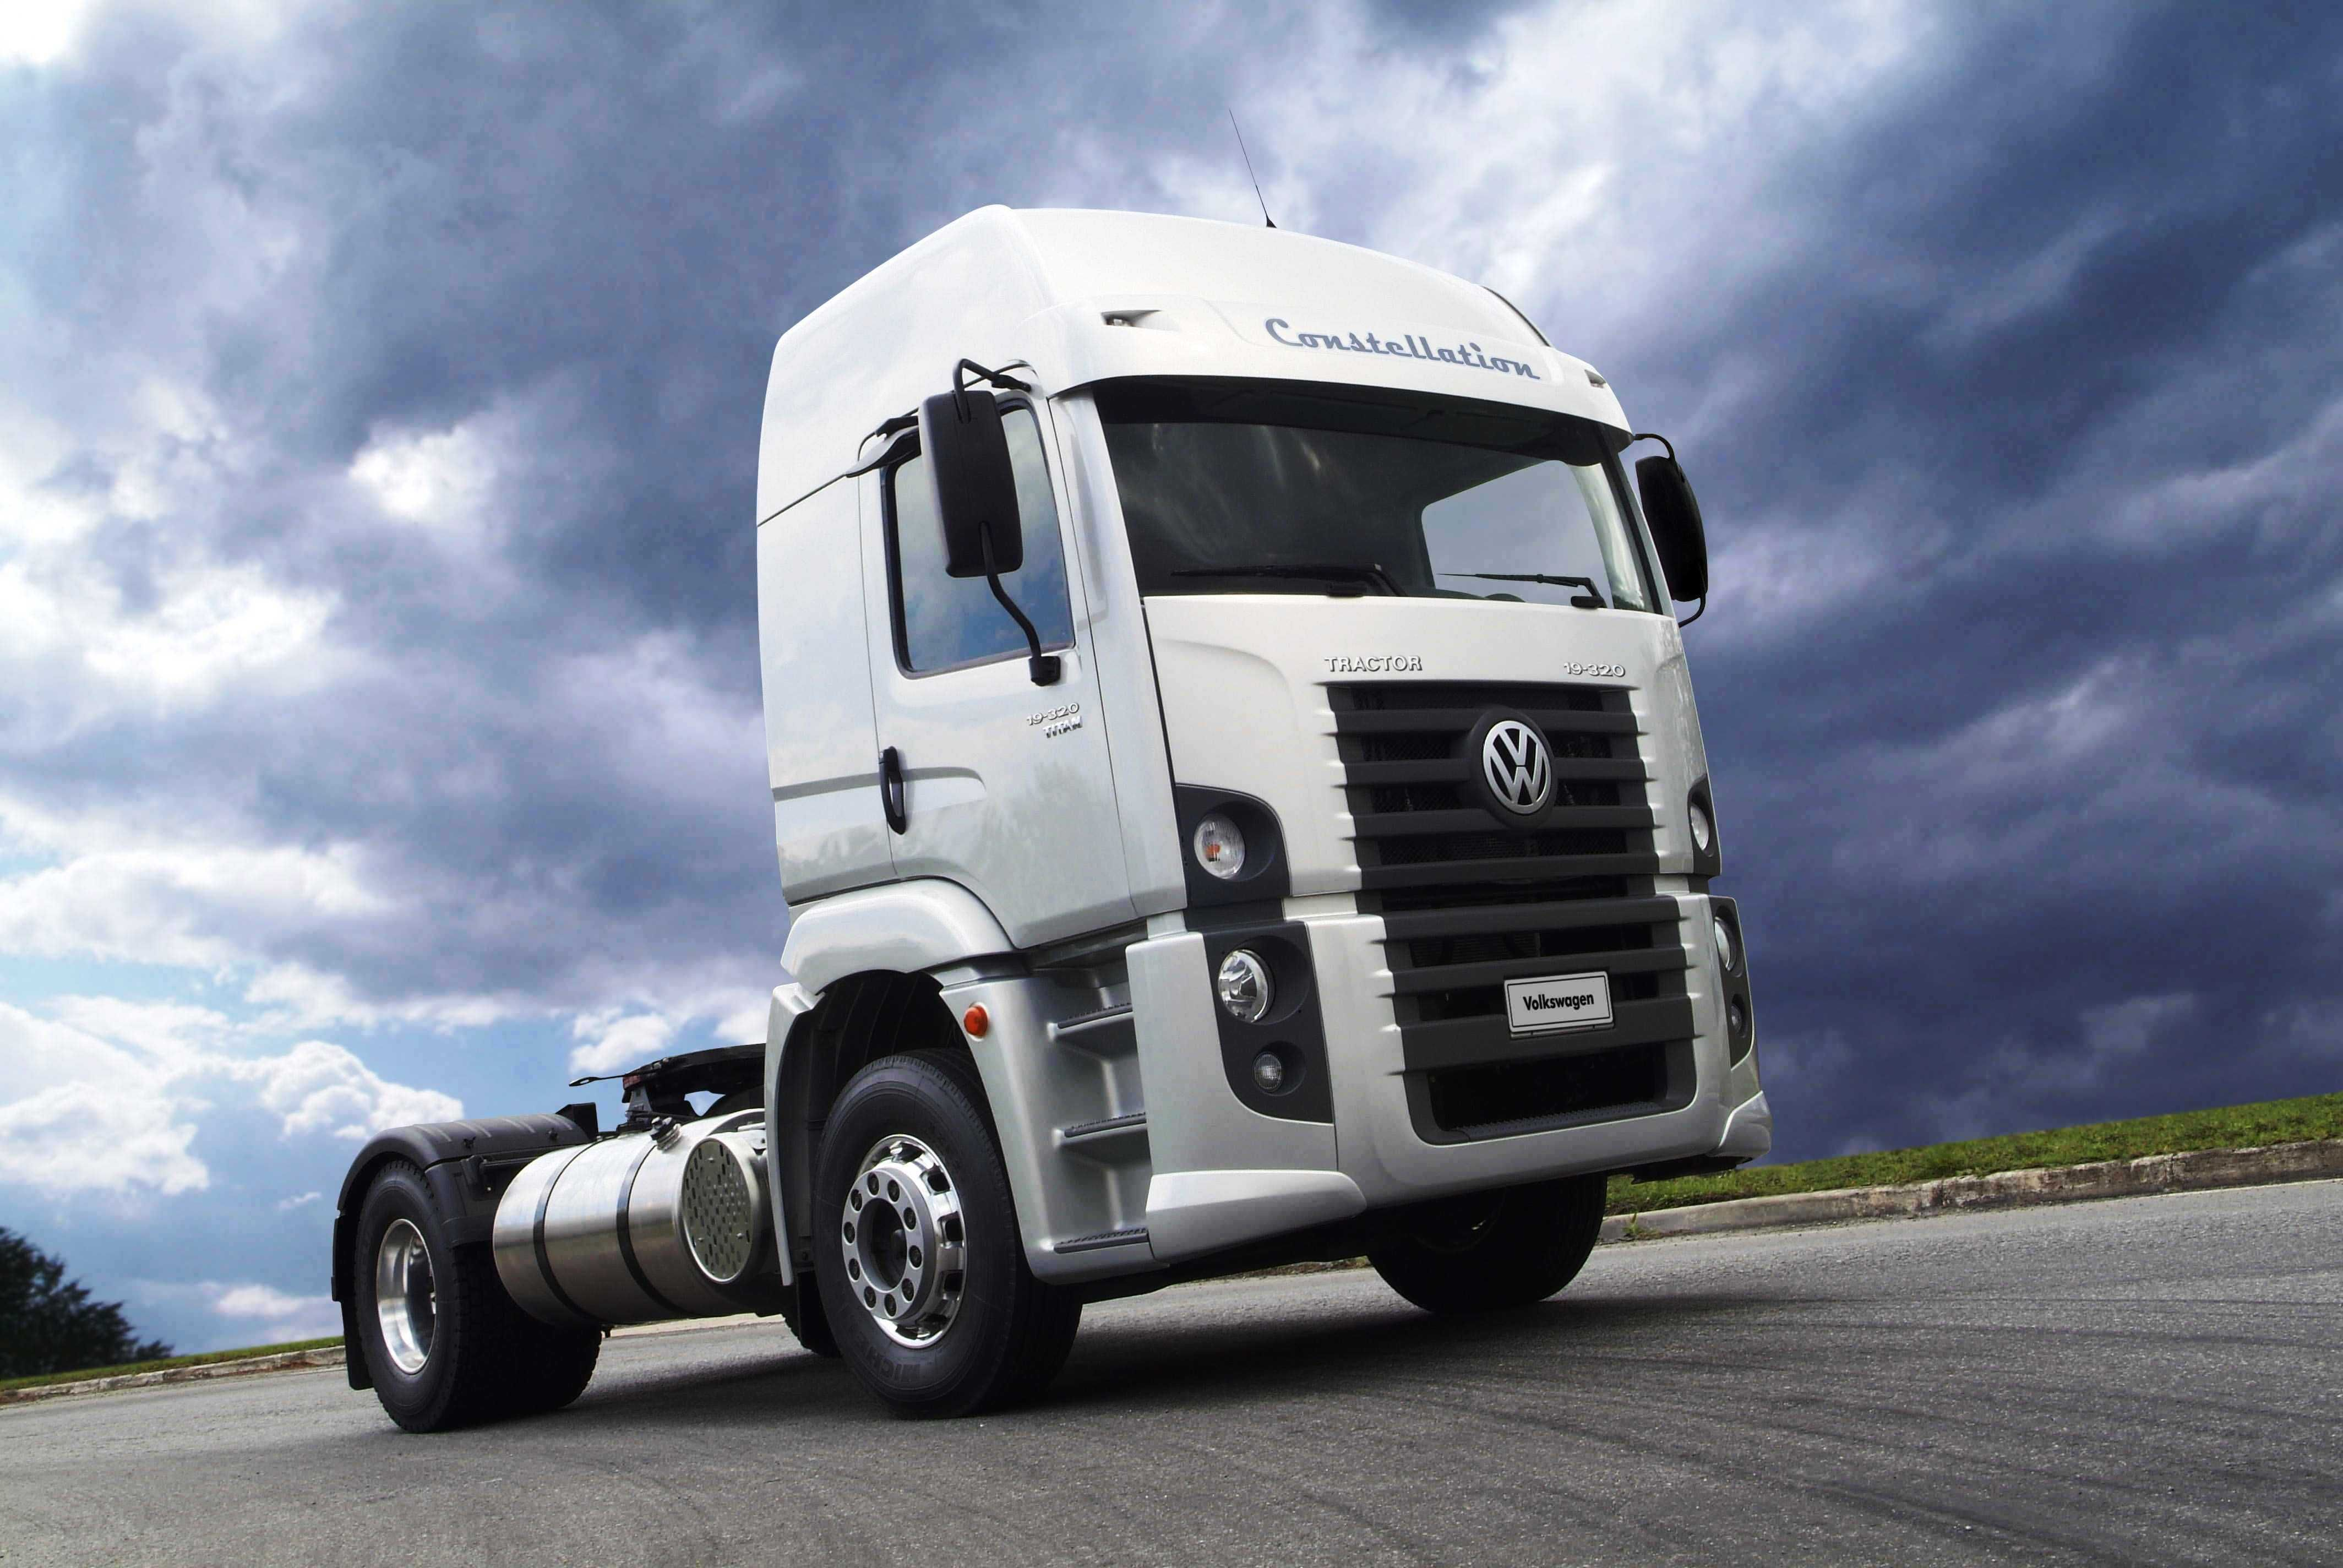 vw trucks - Google zoeken | Trucks, Volkswagen, Big trucks